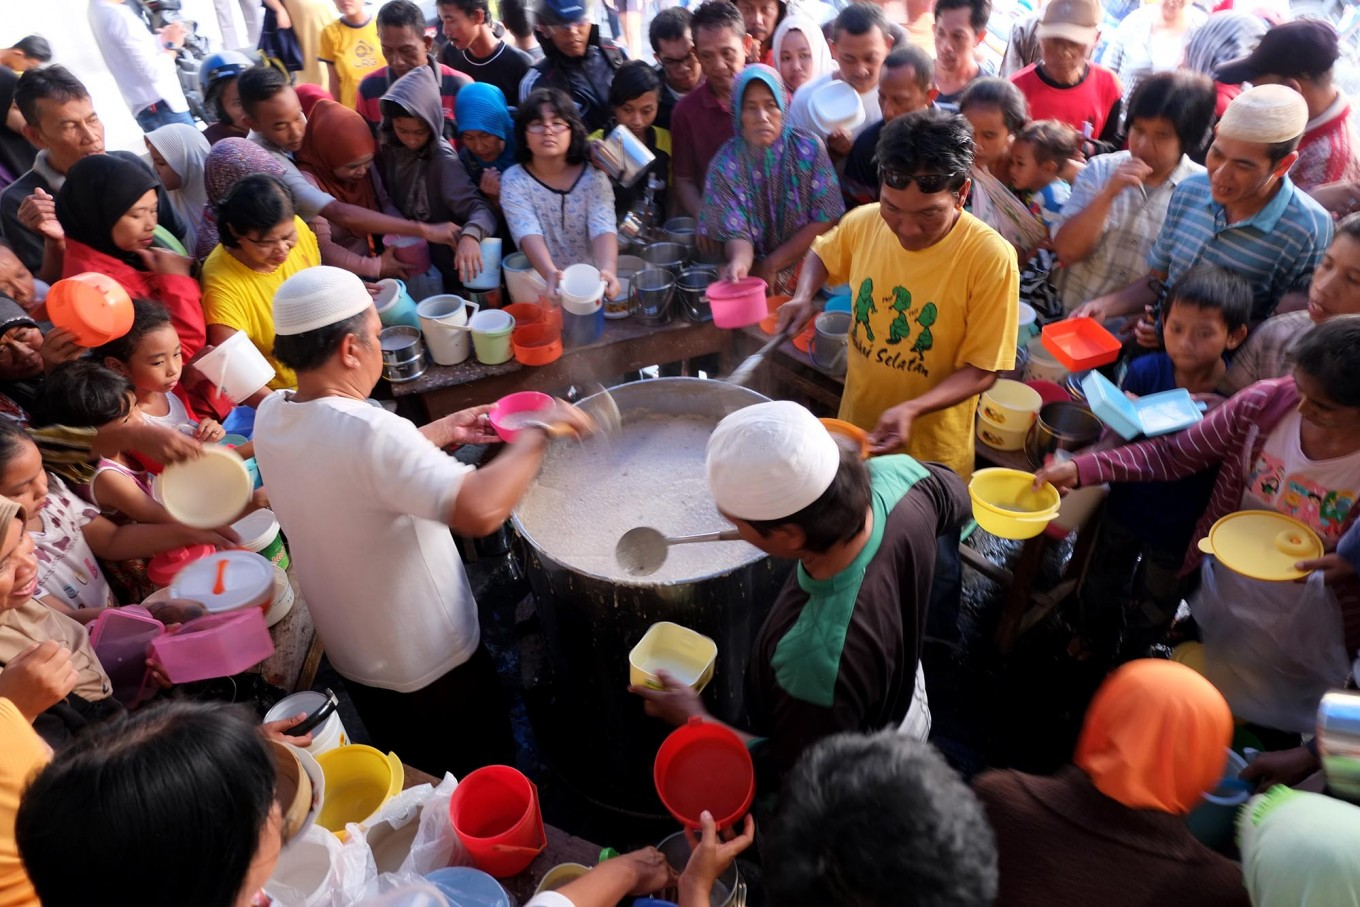 First-come, first-served: Mosque committee members distribute the porridge to hundreds of residents who come from nearby neighborhoods and outside the kampung. JP/ Ganug Nugroho Adi